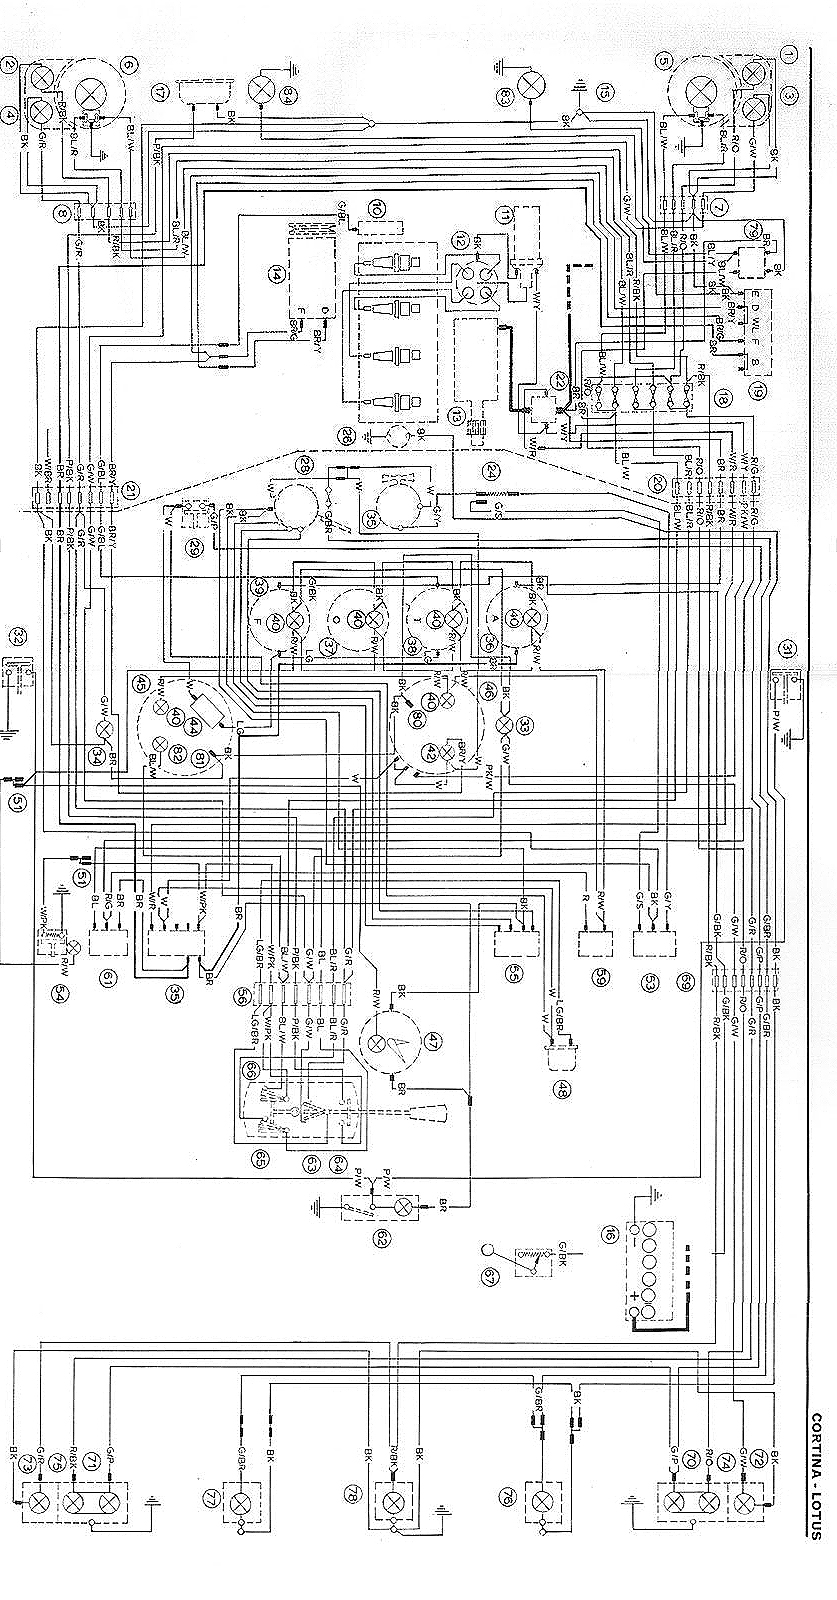 Mk2 Fuse Diagram | Wiring Diagram Ford Focus Mk Fuse Box Layout on ford focus check engine light, ford focus fog lights, ford focus wiring diagram pdf, ford focus engine parts diagram, ford focus stereo wiring diagram, ford focus relay chart, ford focus gas mileage, 2002 ford ranger fuse layout, 2005 ford focus fuse layout, ford focus cooling system diagram, ford focus oil, 2003 ford focus fuse layout, ford fusion fuse box, 2005 ford 500 fuse layout, ford fuse panel layout, ford focus fuel line diagram, 2002 ford focus fuse layout, ford focus lowered, 2007 ford focus fuse layout, ford fuse box diagram,